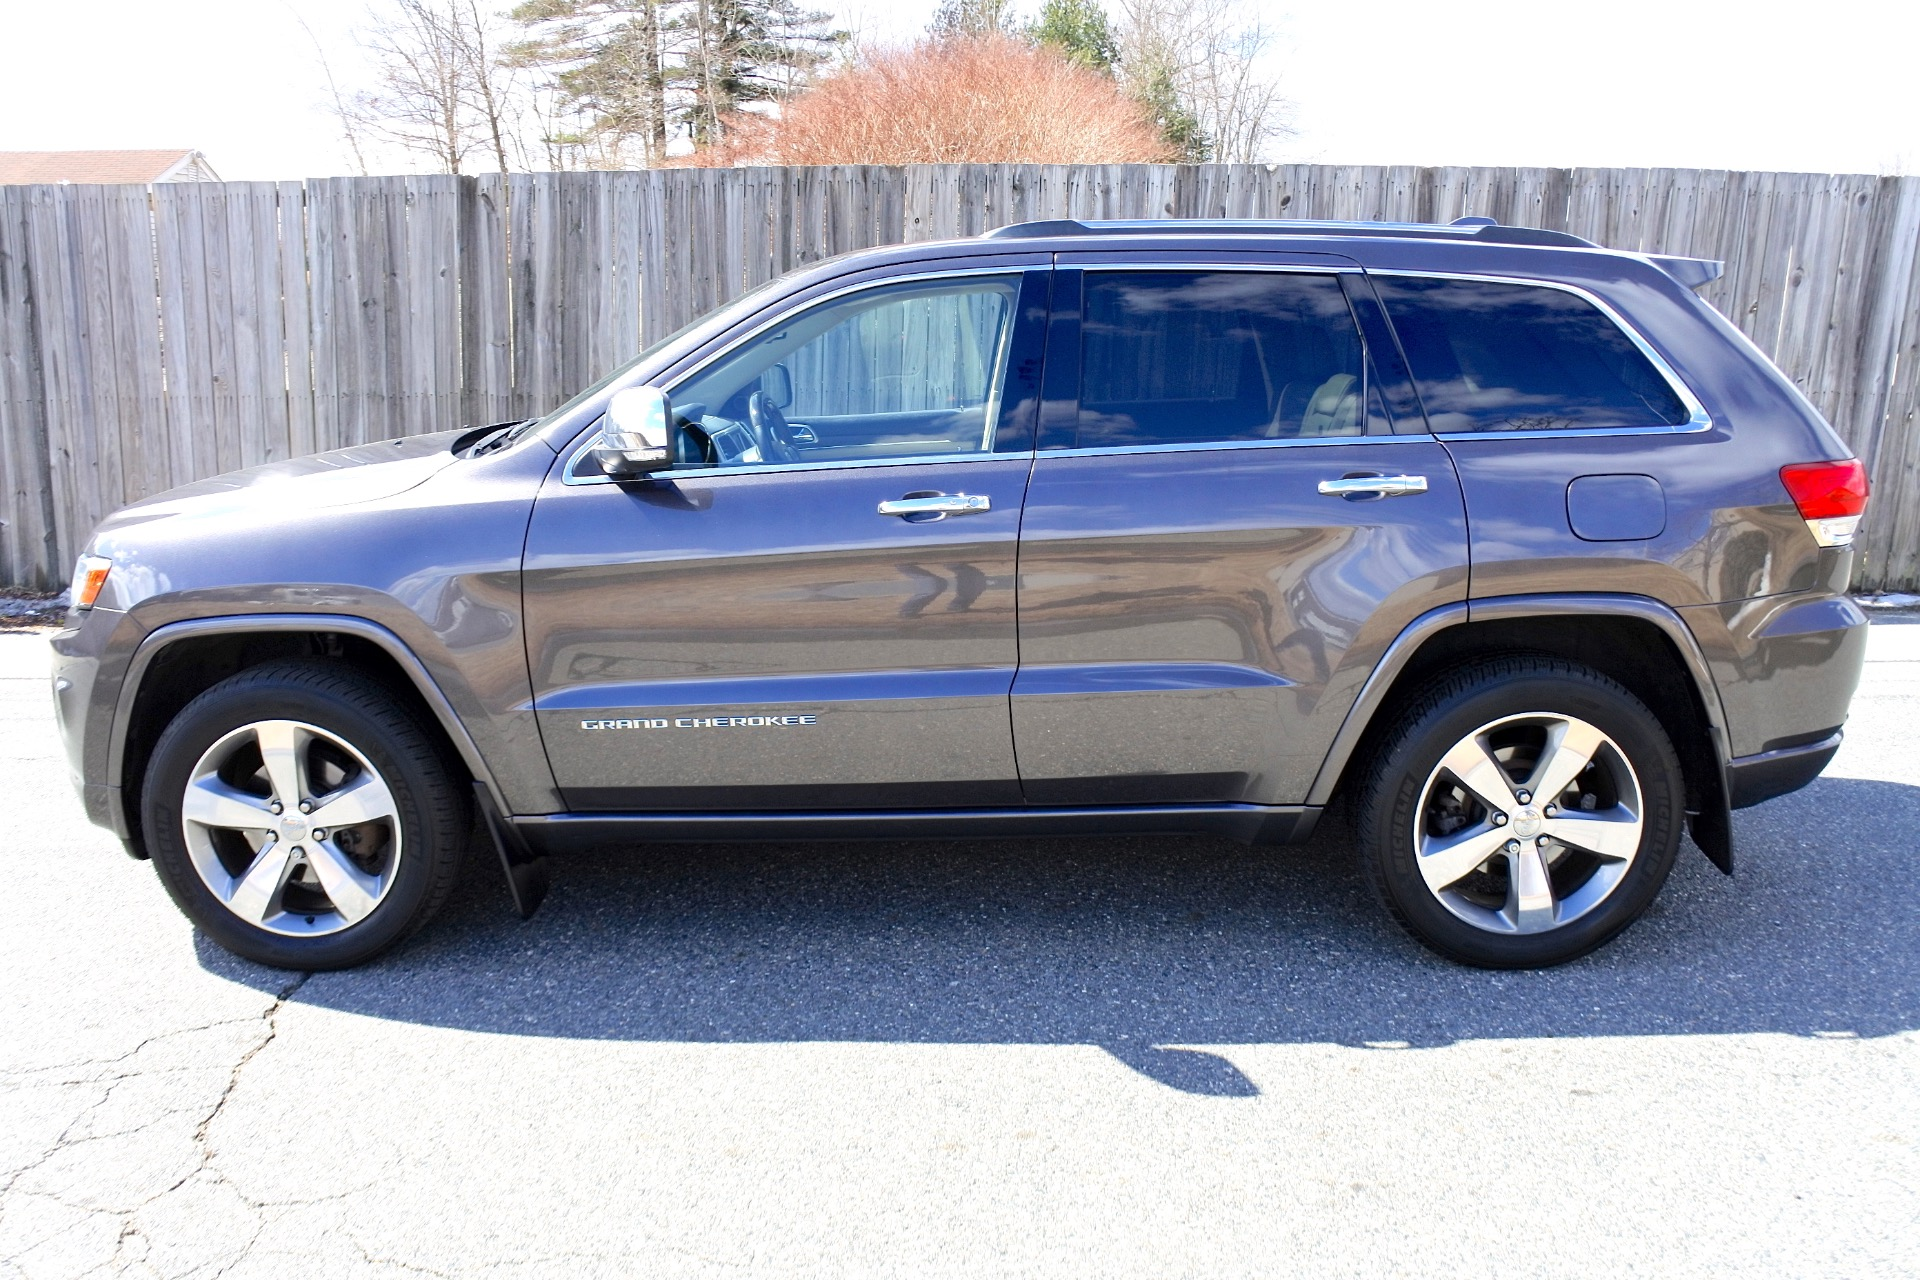 Used 2014 Jeep Grand Cherokee 4WD 4dr Overland Used 2014 Jeep Grand Cherokee 4WD 4dr Overland for sale  at Metro West Motorcars LLC in Shrewsbury MA 2